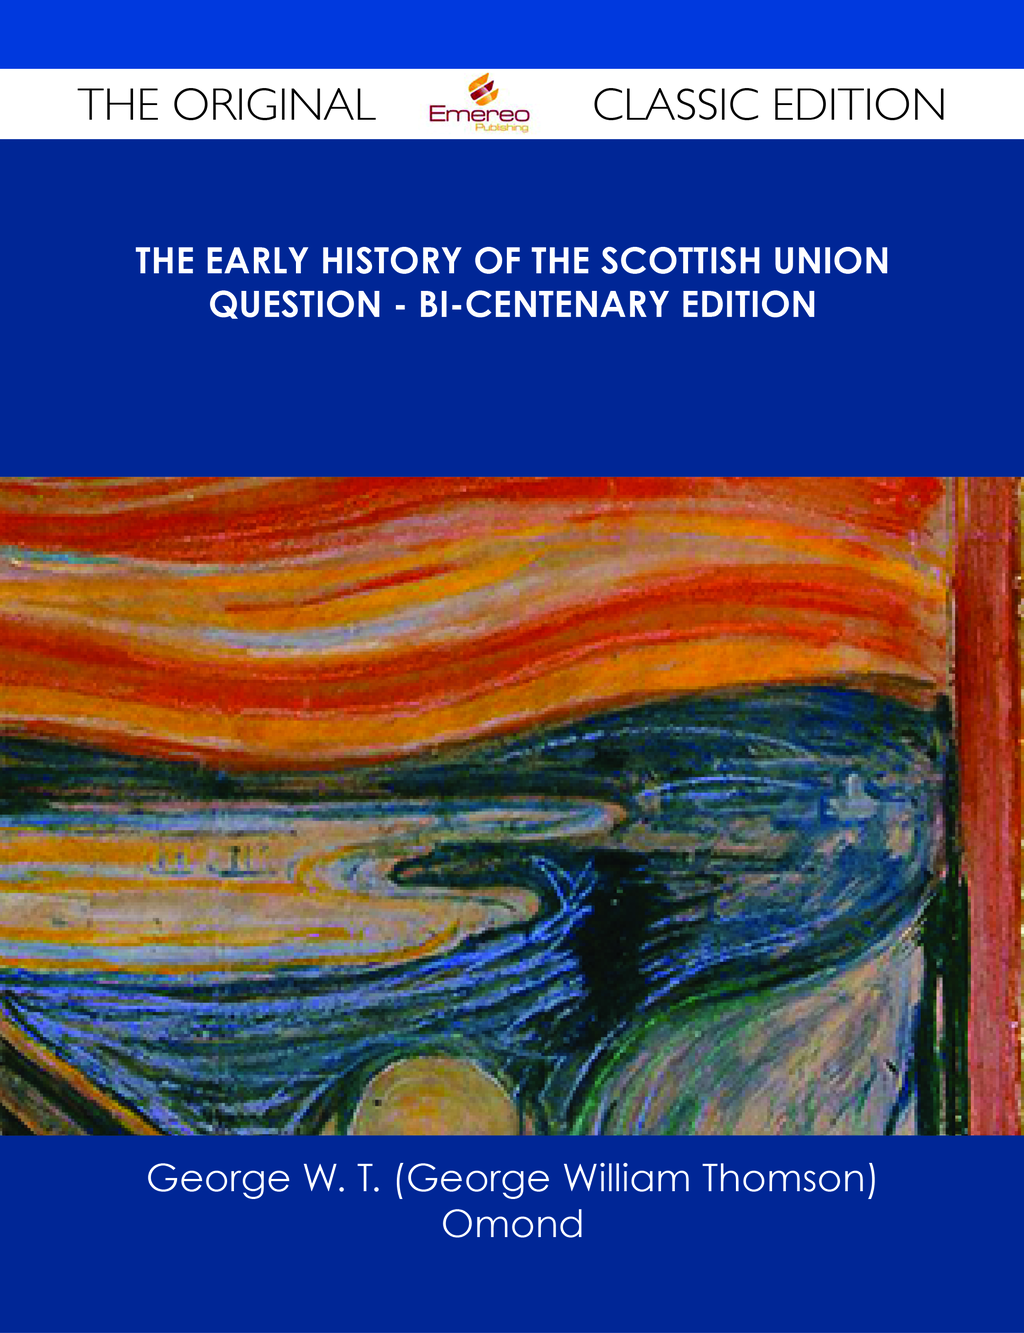 The Early History of the Scottish Union Question - Bi-Centenary Edition - The Original Classic Edition